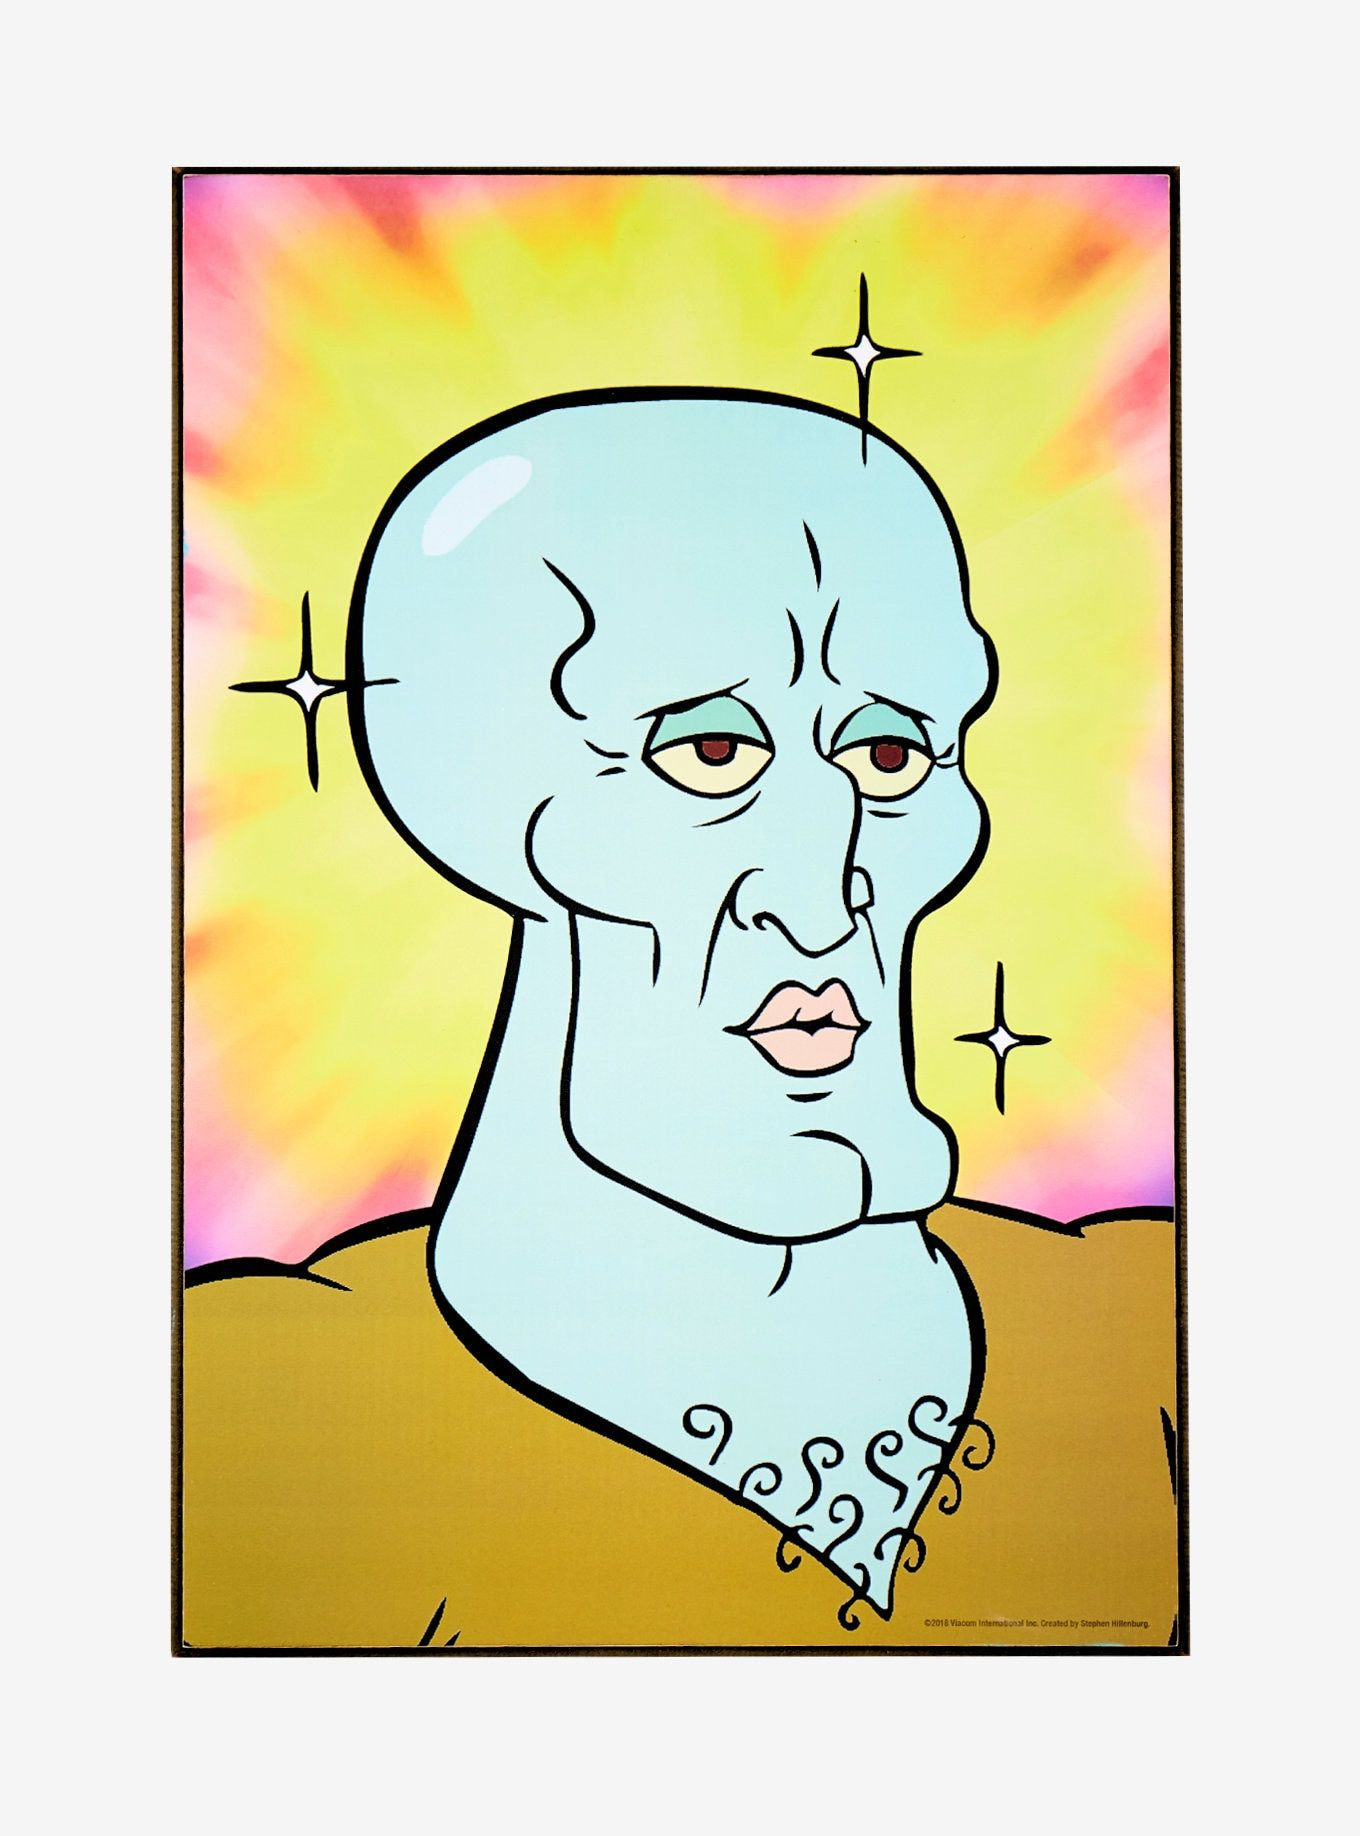 Handsome Spongebob : handsome, spongebob, SpongeBob, SquarePants, Handsome, Squidward, Spongebob, Drawings,, Canvas, Painting